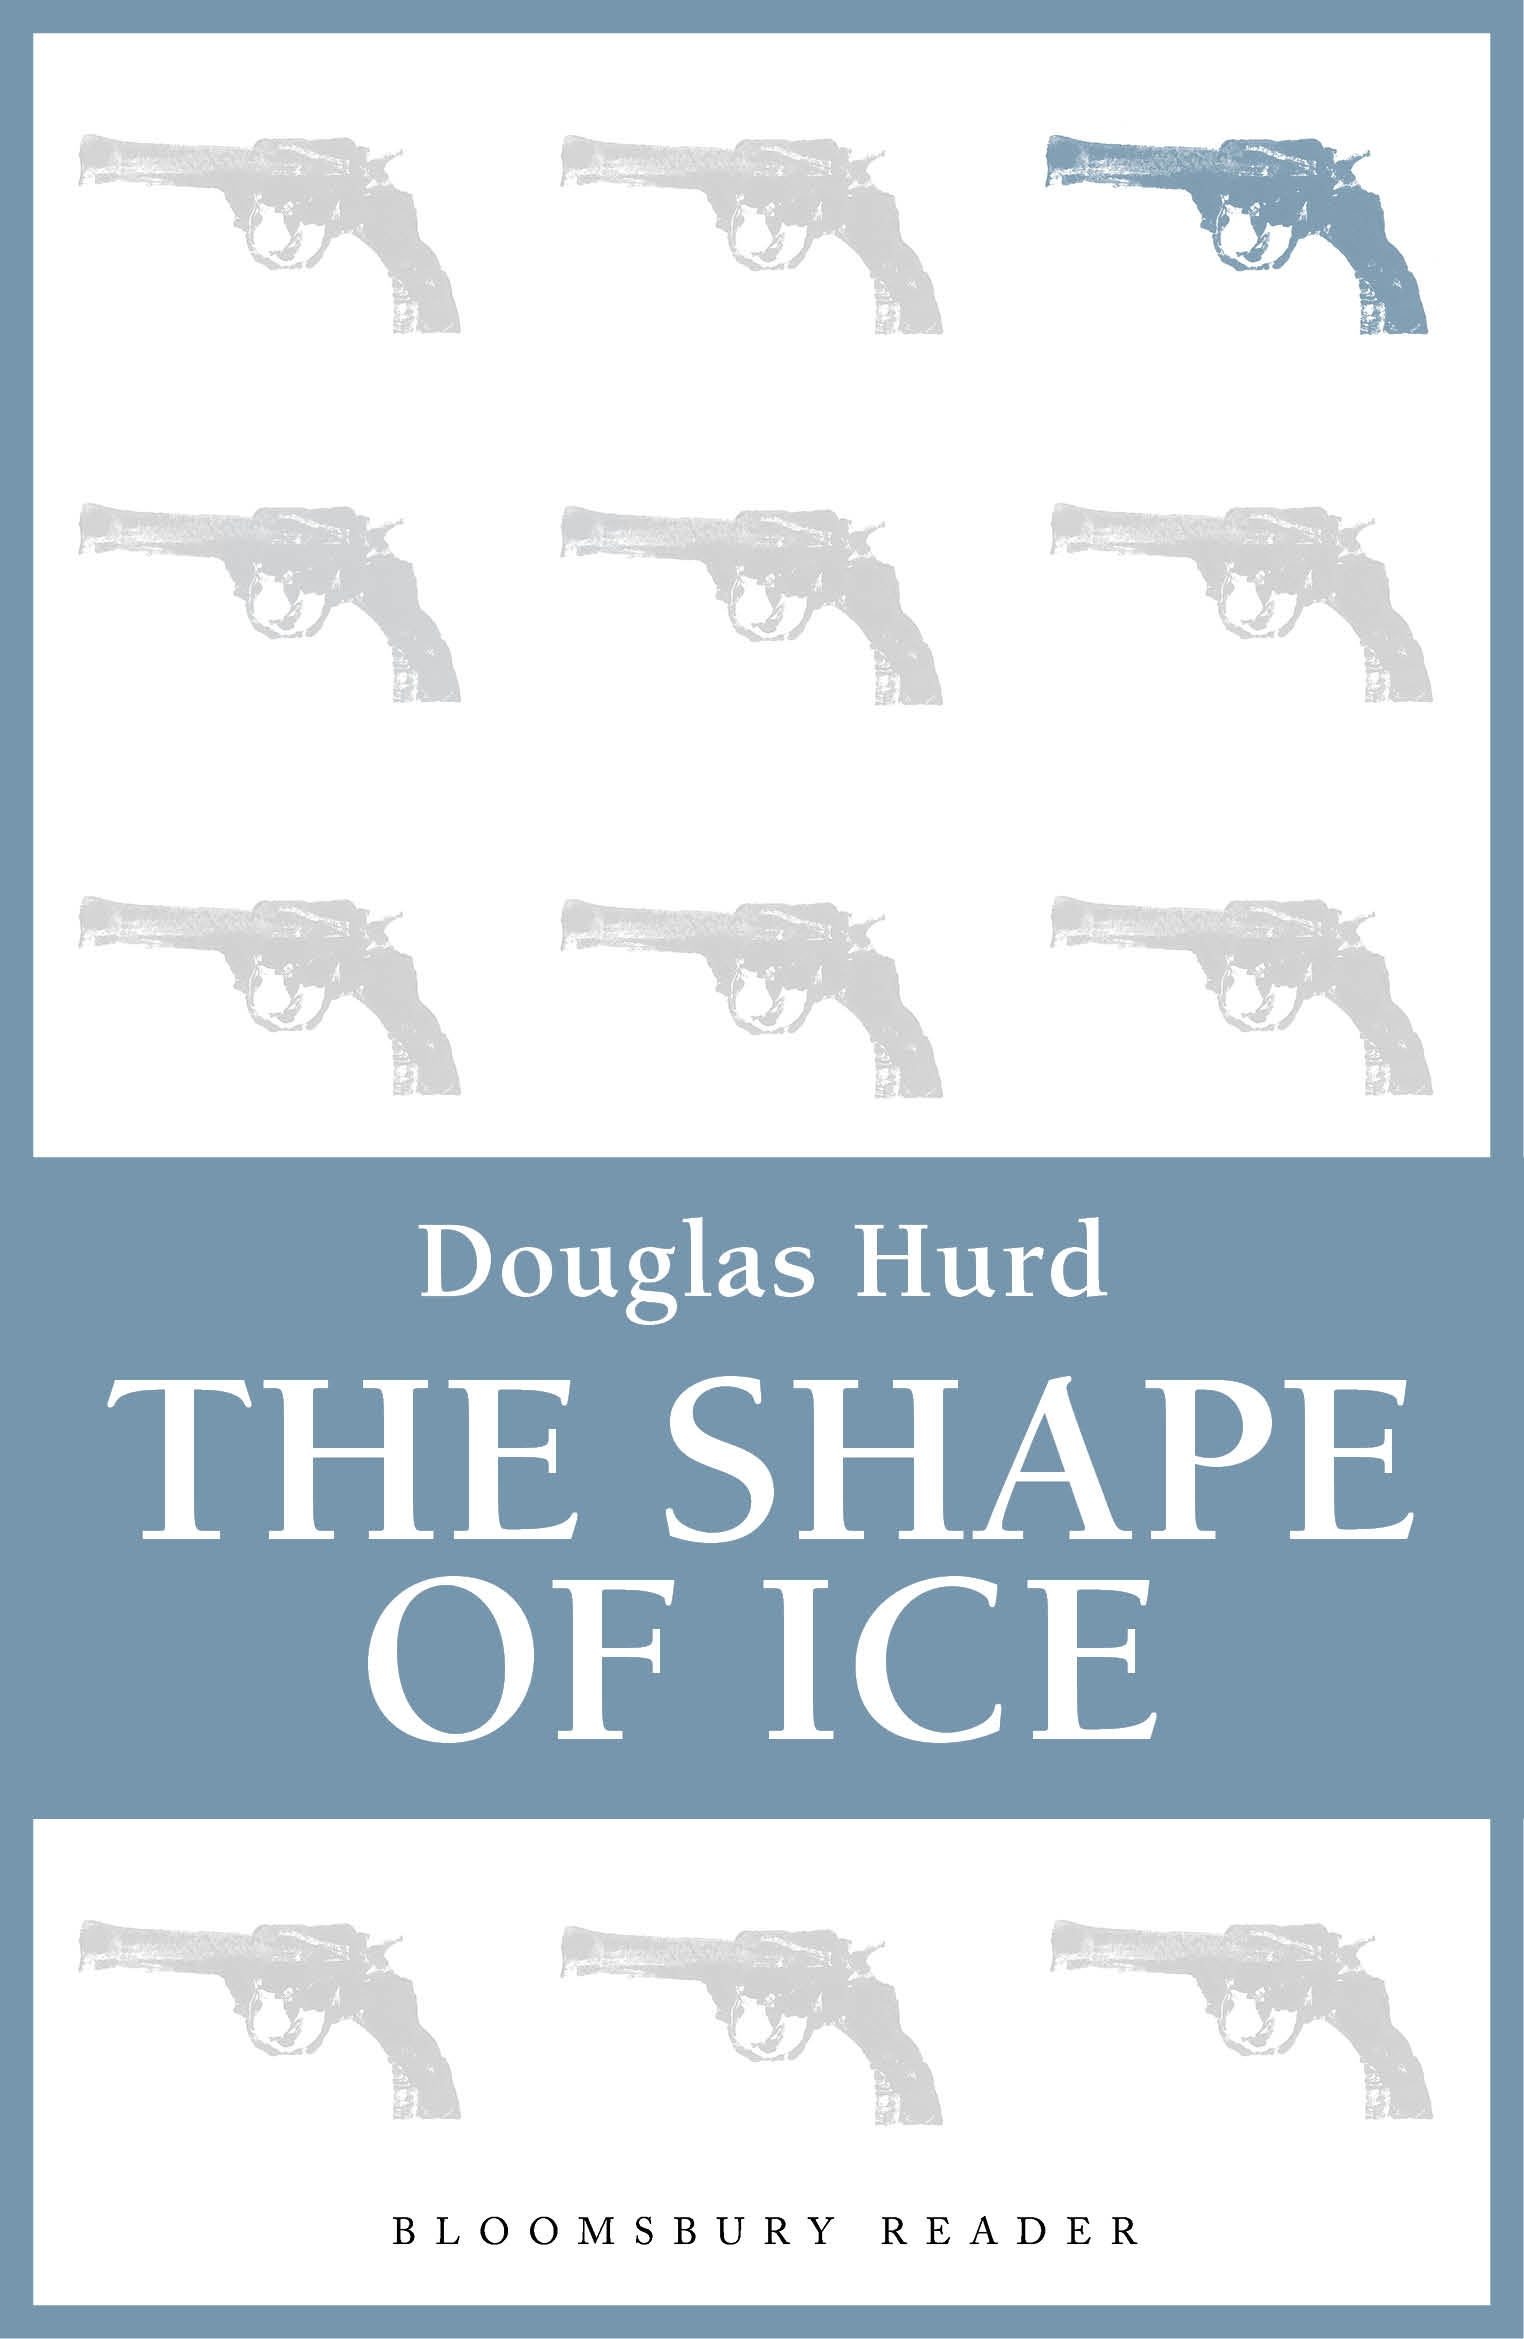 The Shape of Ice